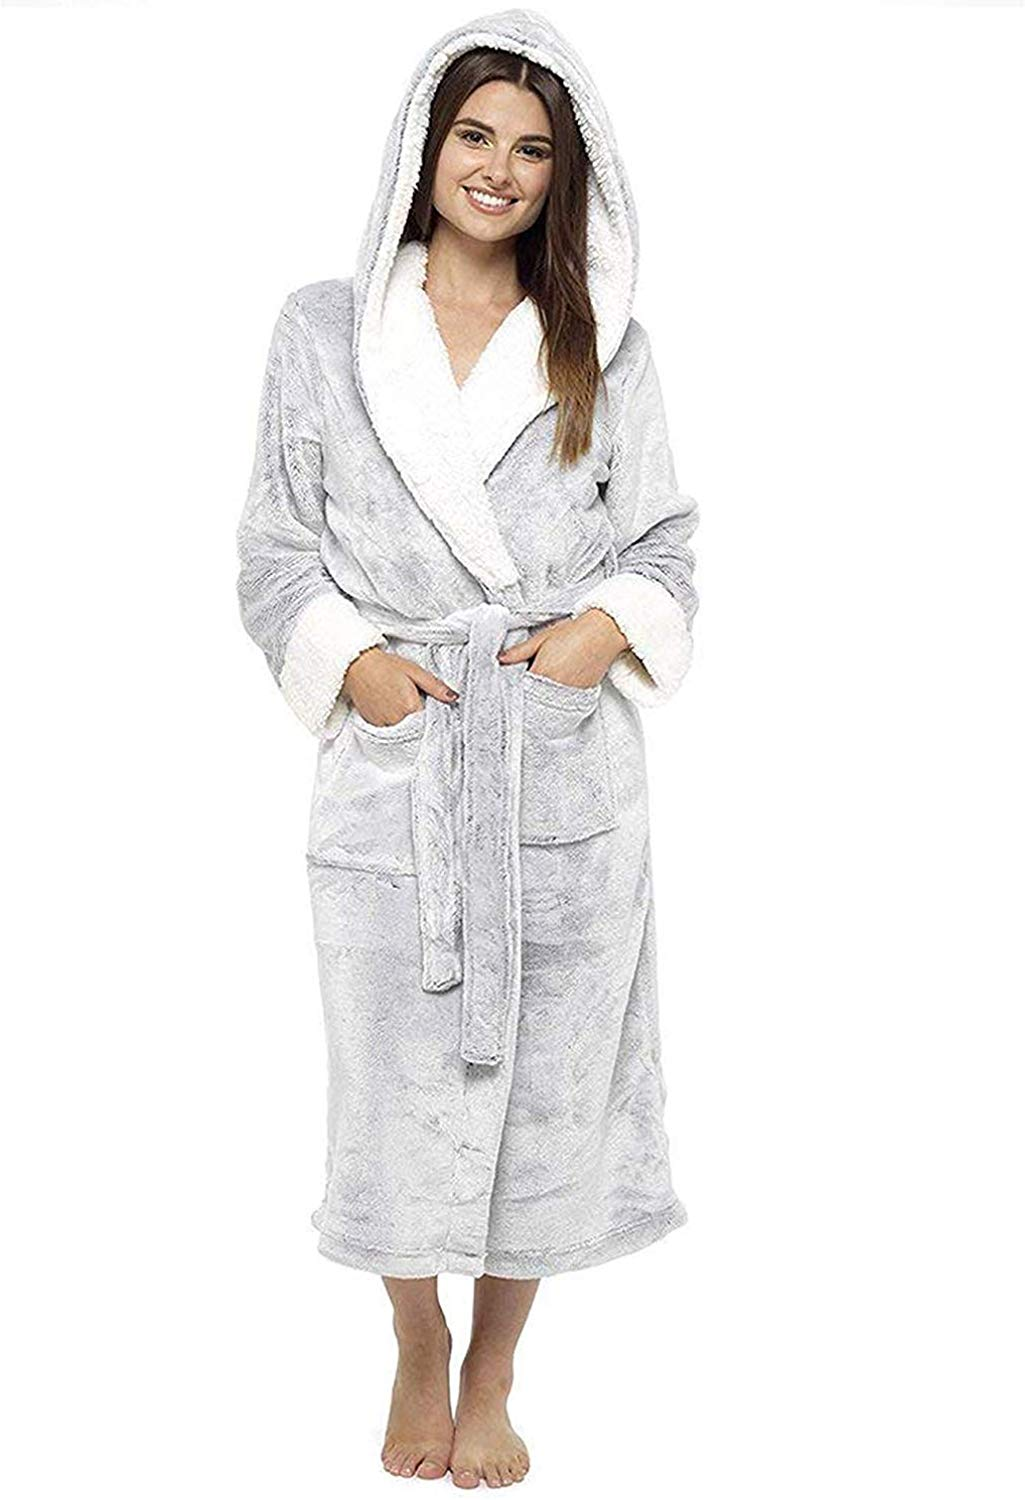 Women Housecoat Loungewear Bathrobe